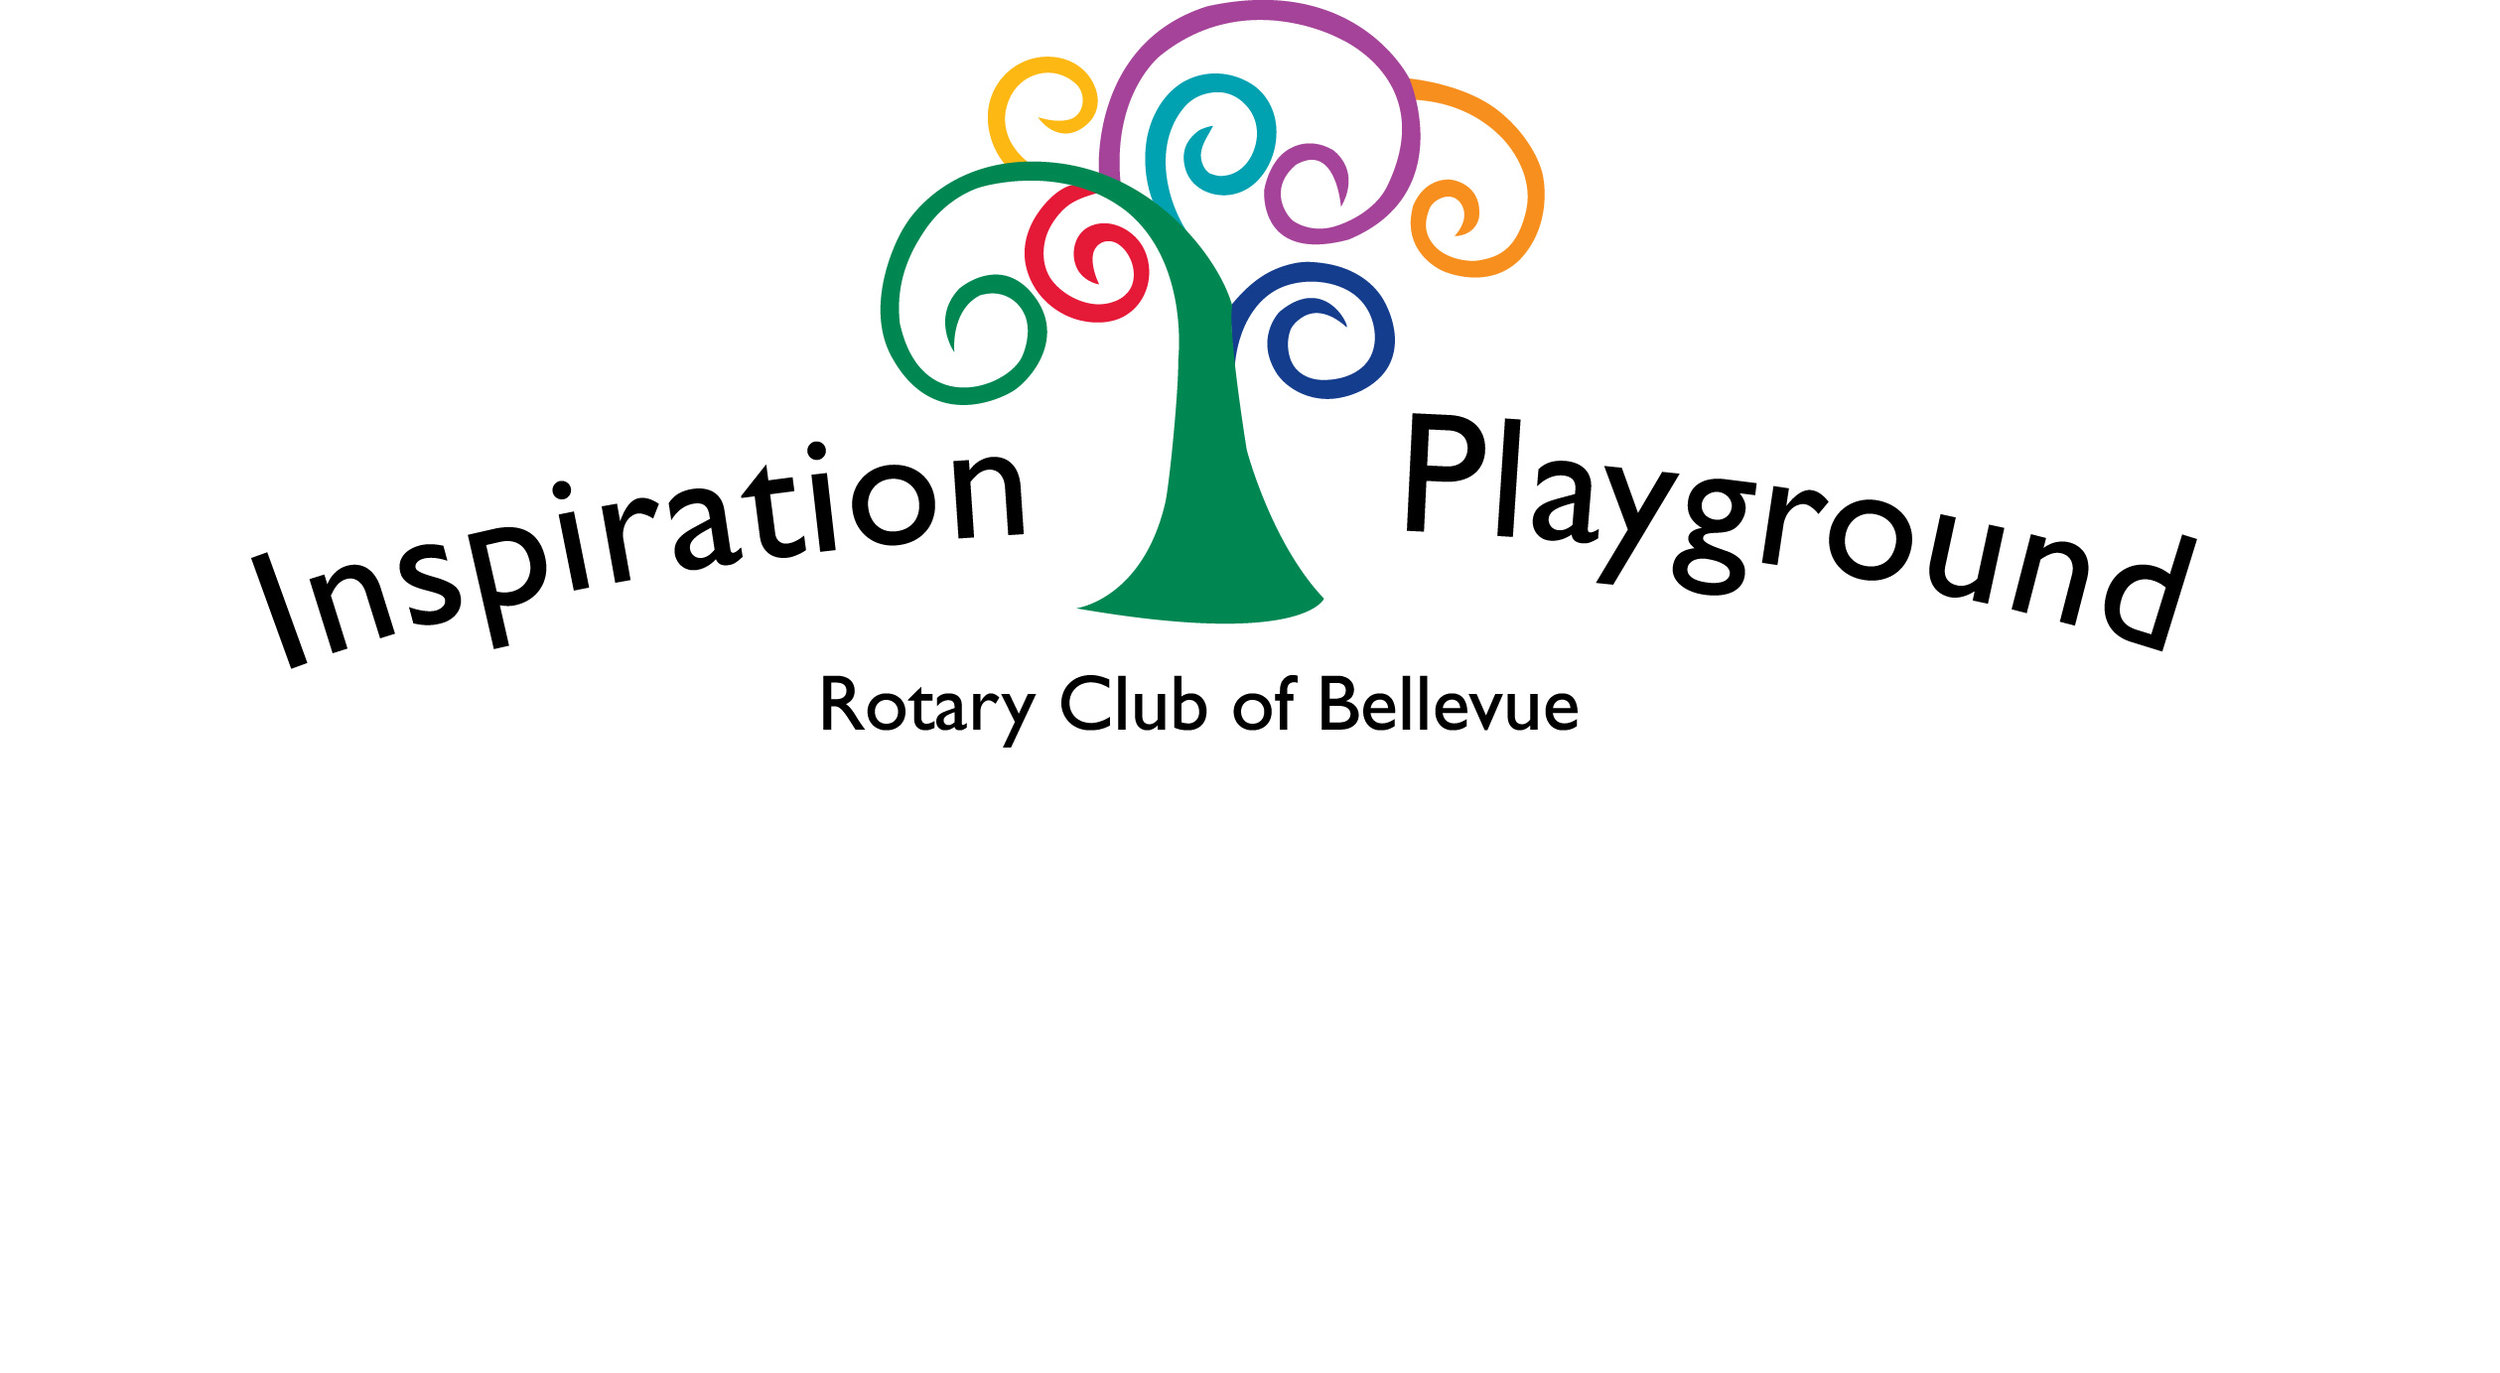 Inspirartion Playground Rotary Club of Bellevue